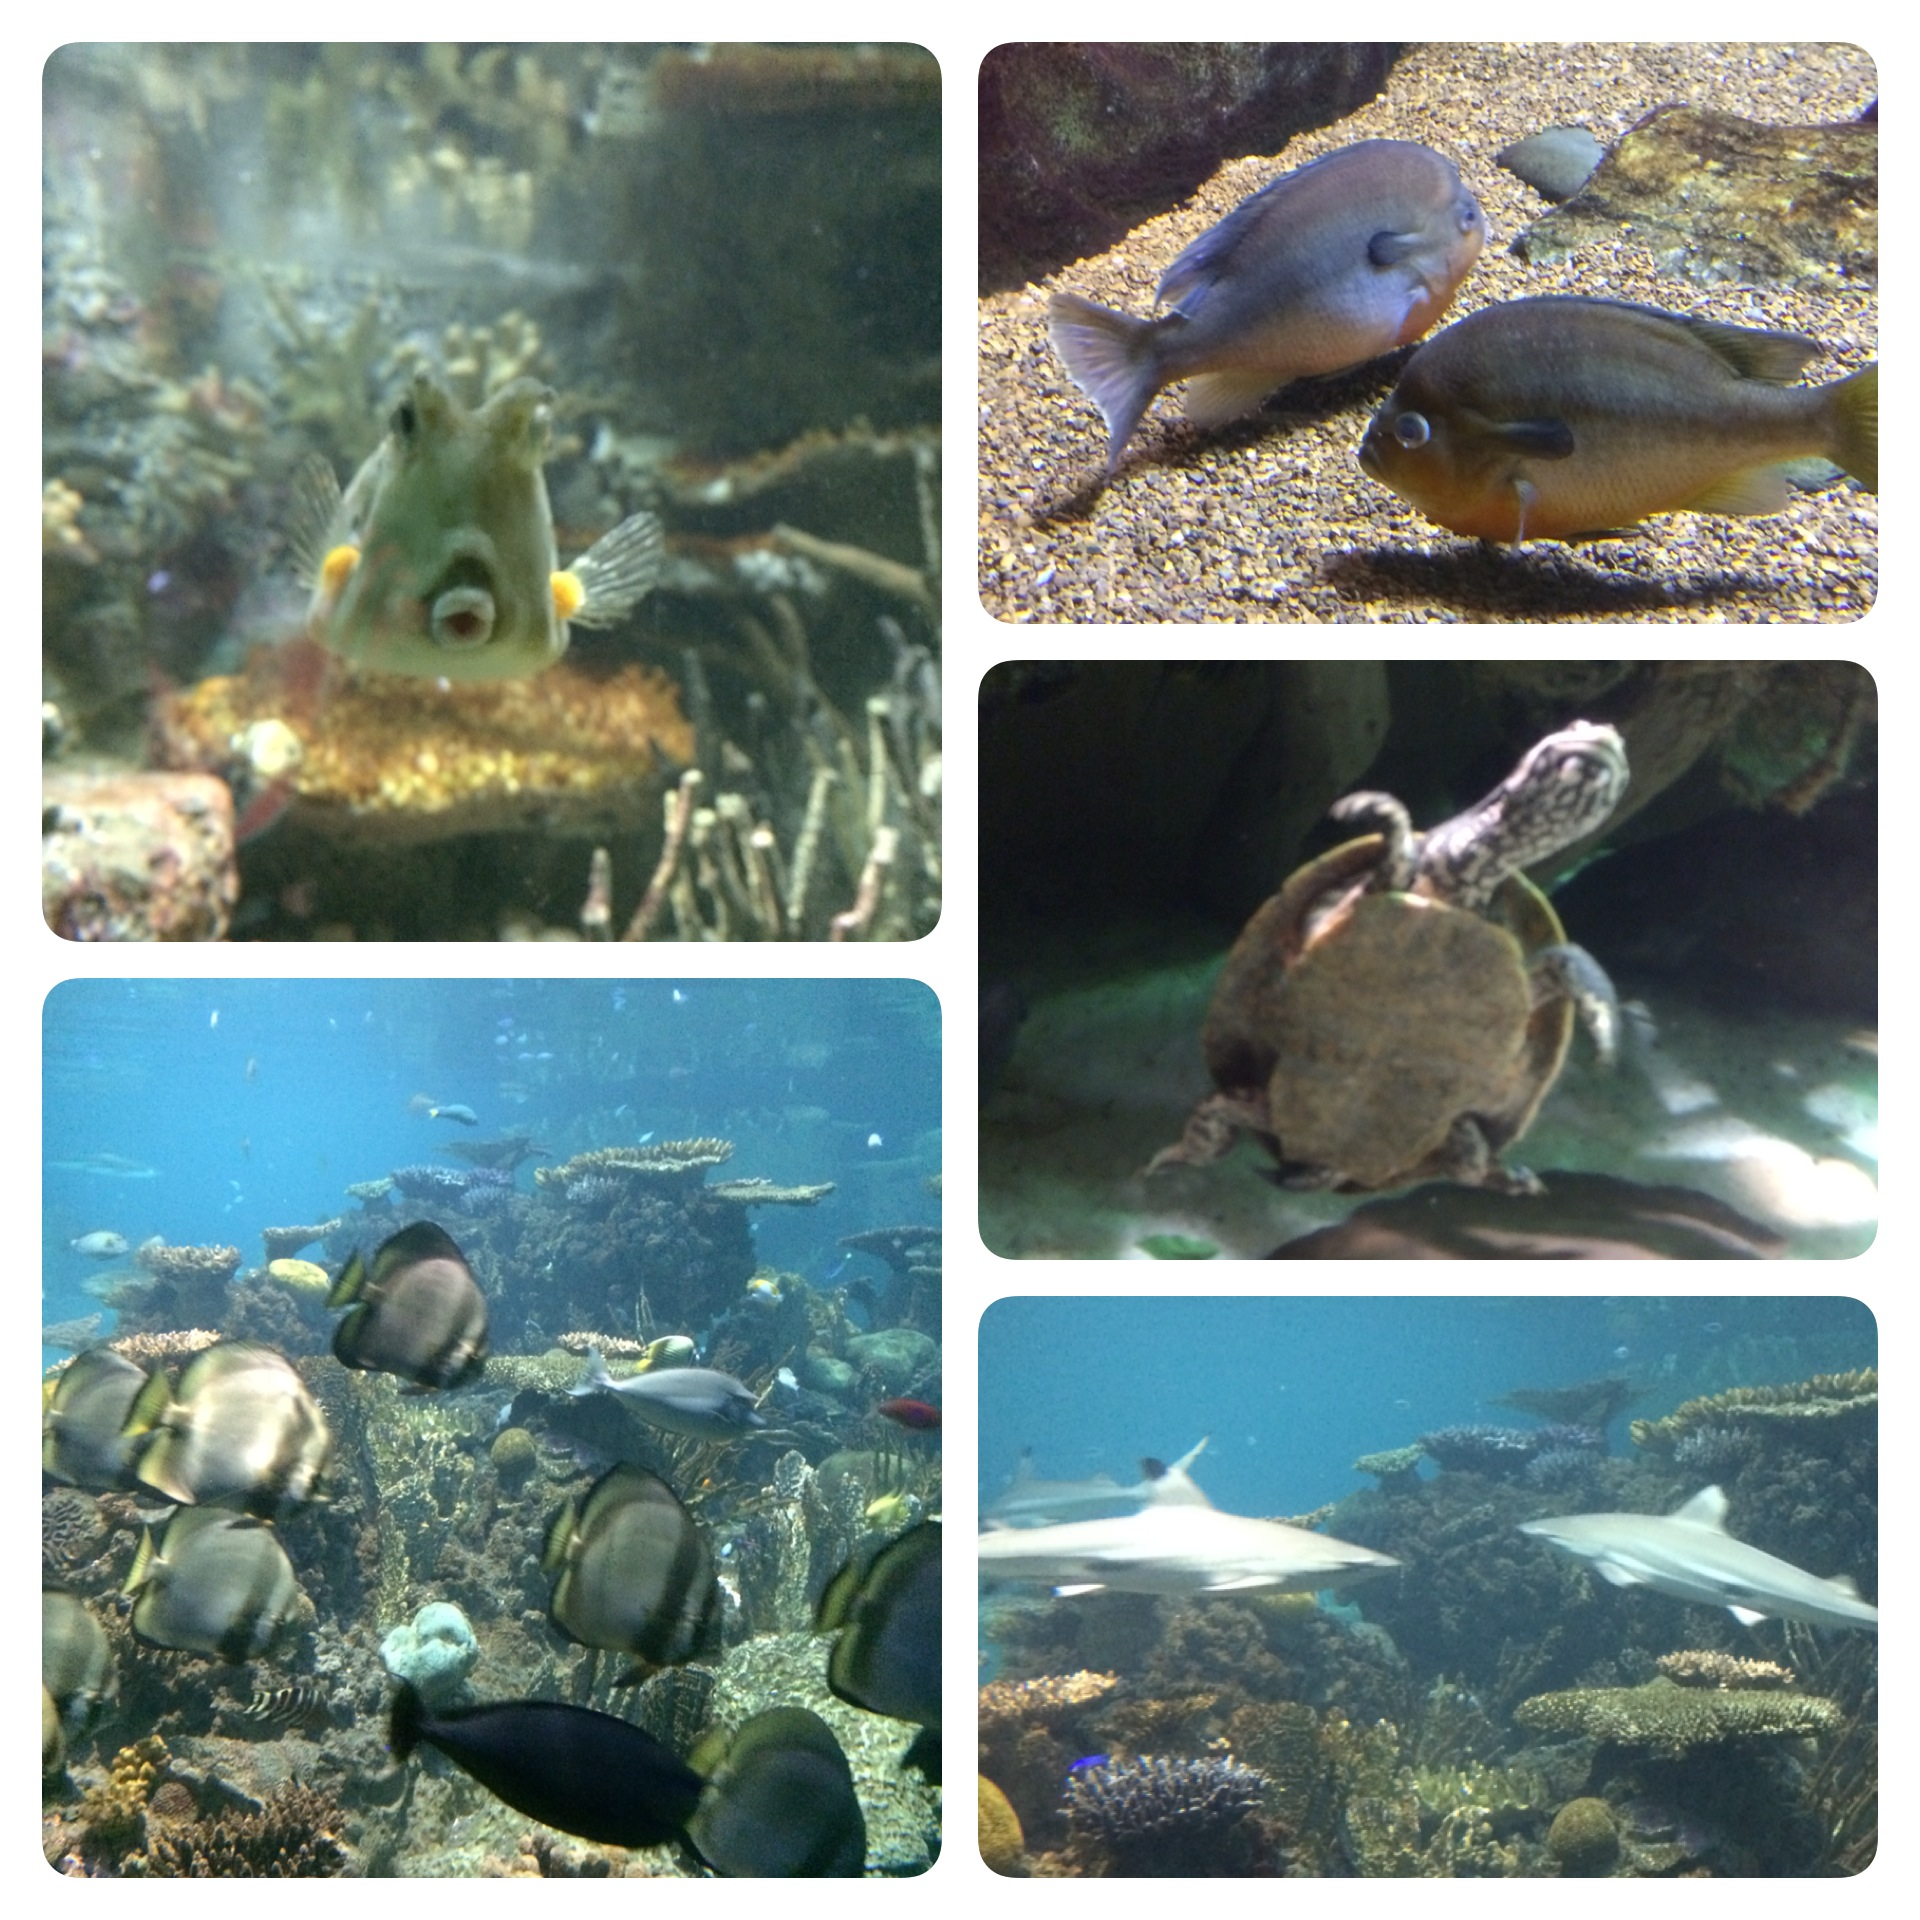 Some photos I snapped at the National Aquarium.